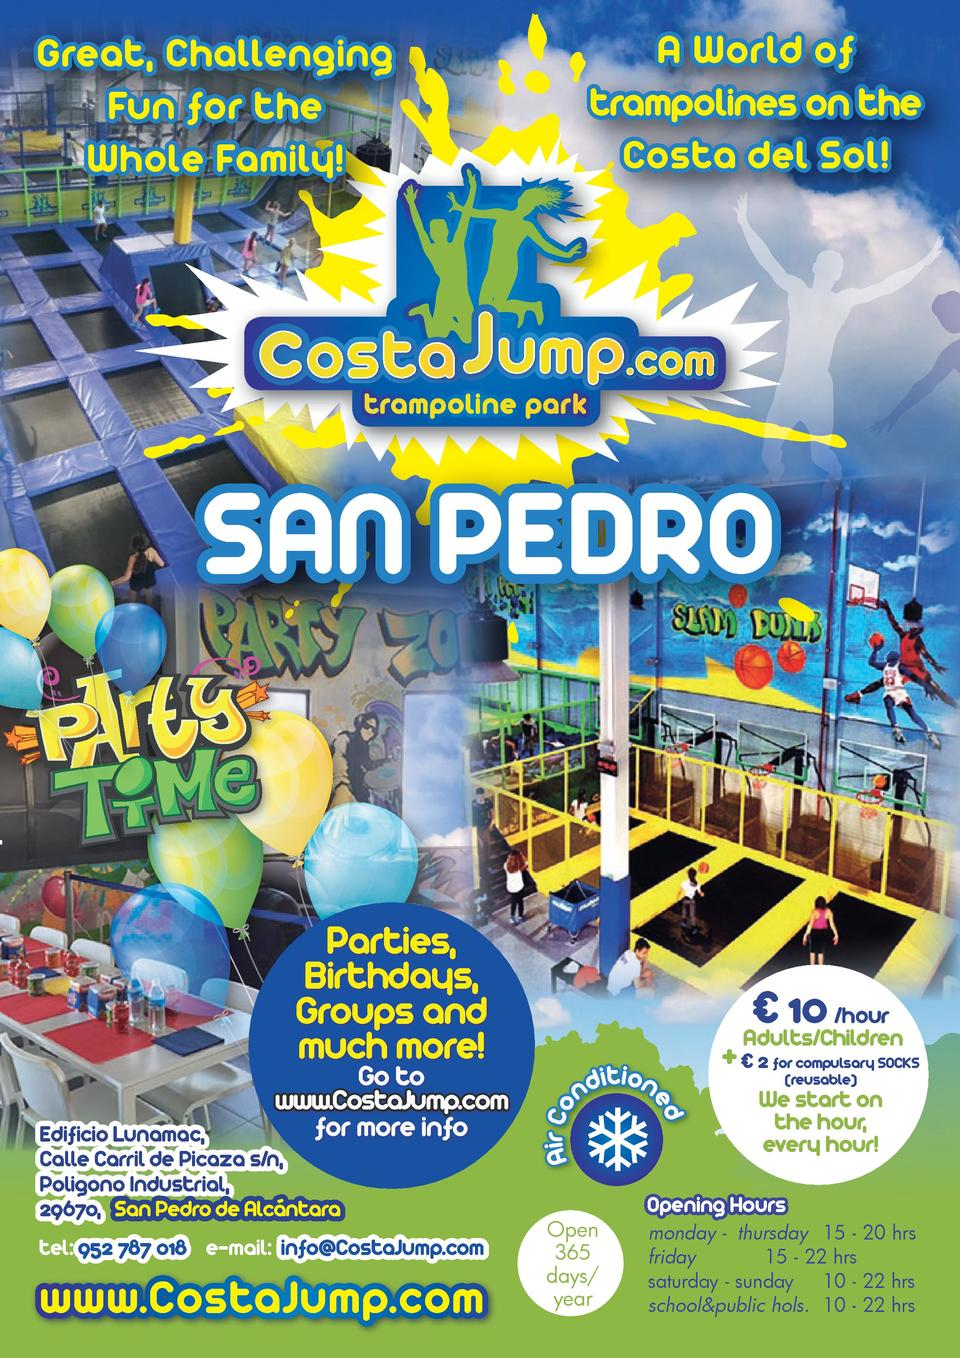 A World of trampolines on the Costa del Sol   Great, Challenging Fun for the Whole Family   SAN PEDRO Fiestas, Parties, Cu...